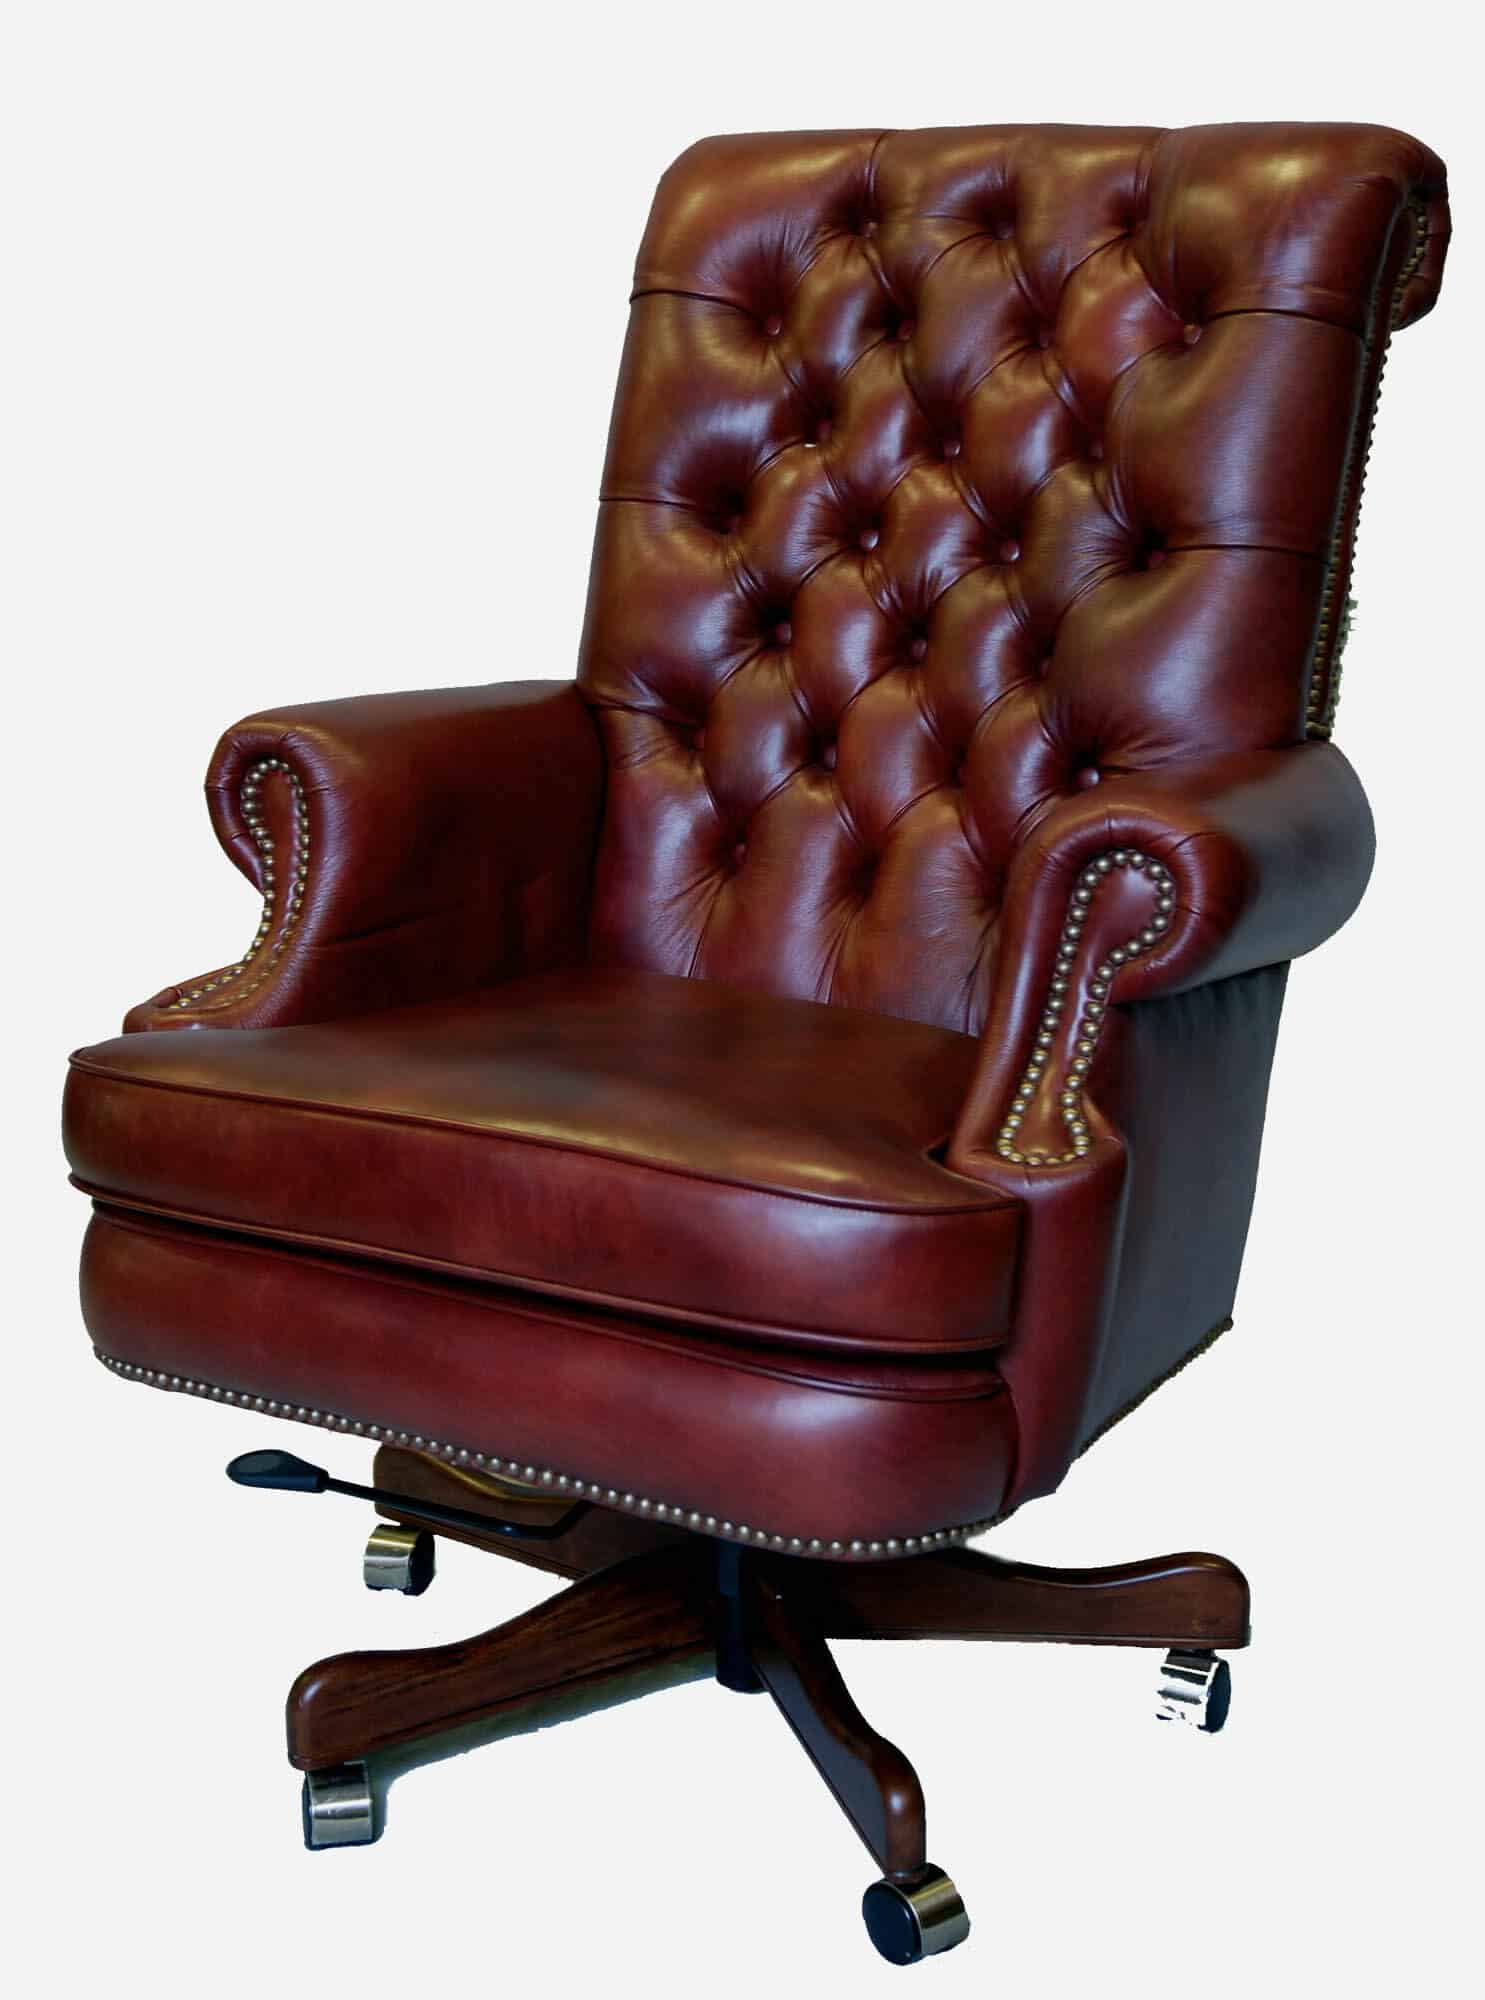 Executive Chairs Office Chair Guide And How To Buy A Desk Chair 43 Top 10